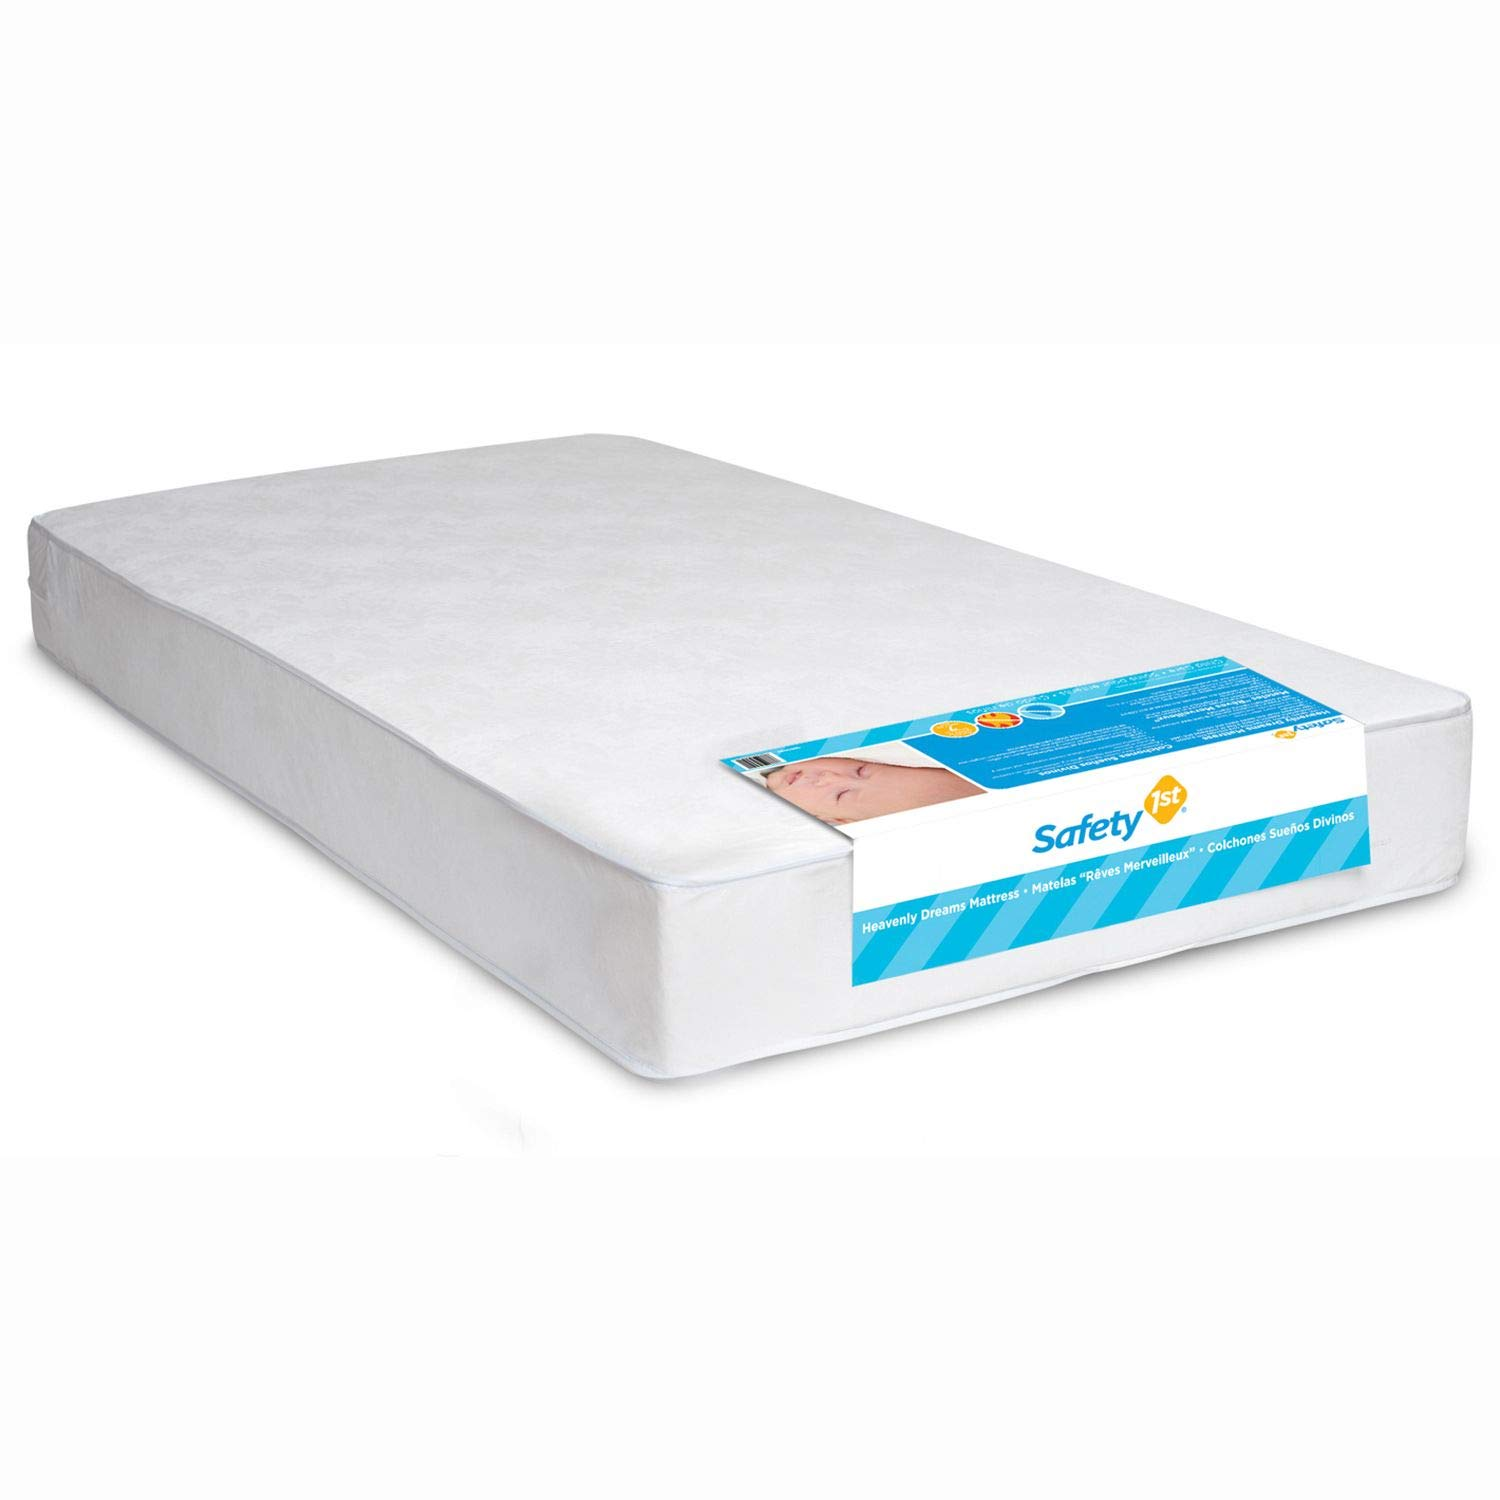 SAFETY 1st Heavenly Dreams Babys Mattress Lightweight